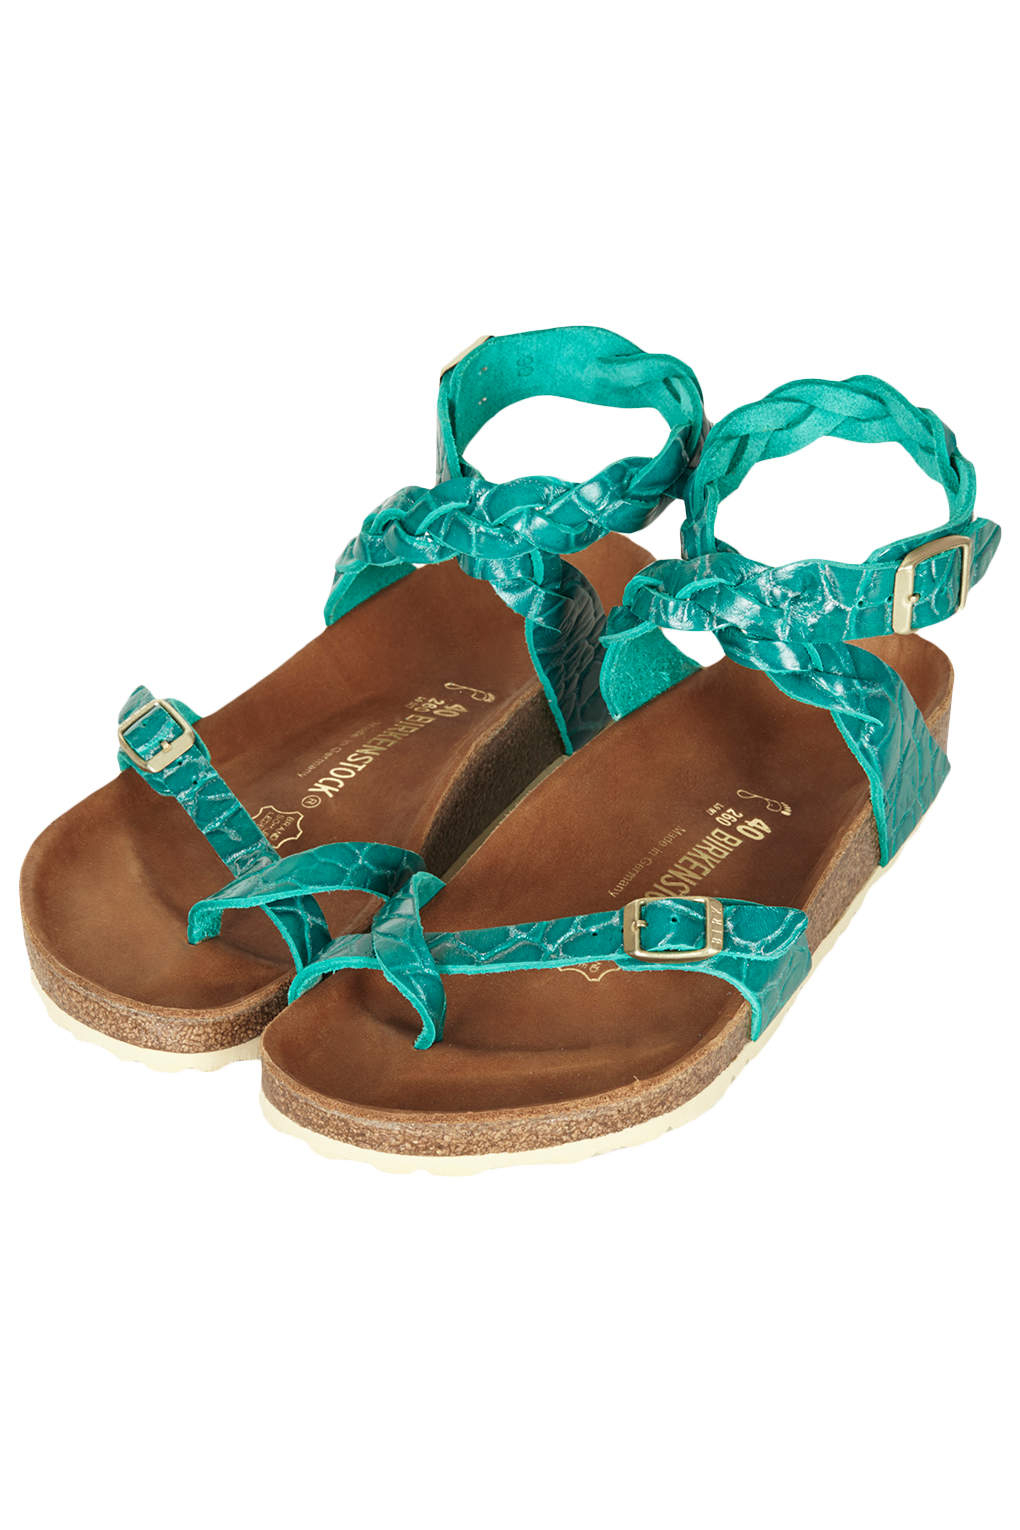 Lyst Topshop Birkenstock Yara Sandals In Green